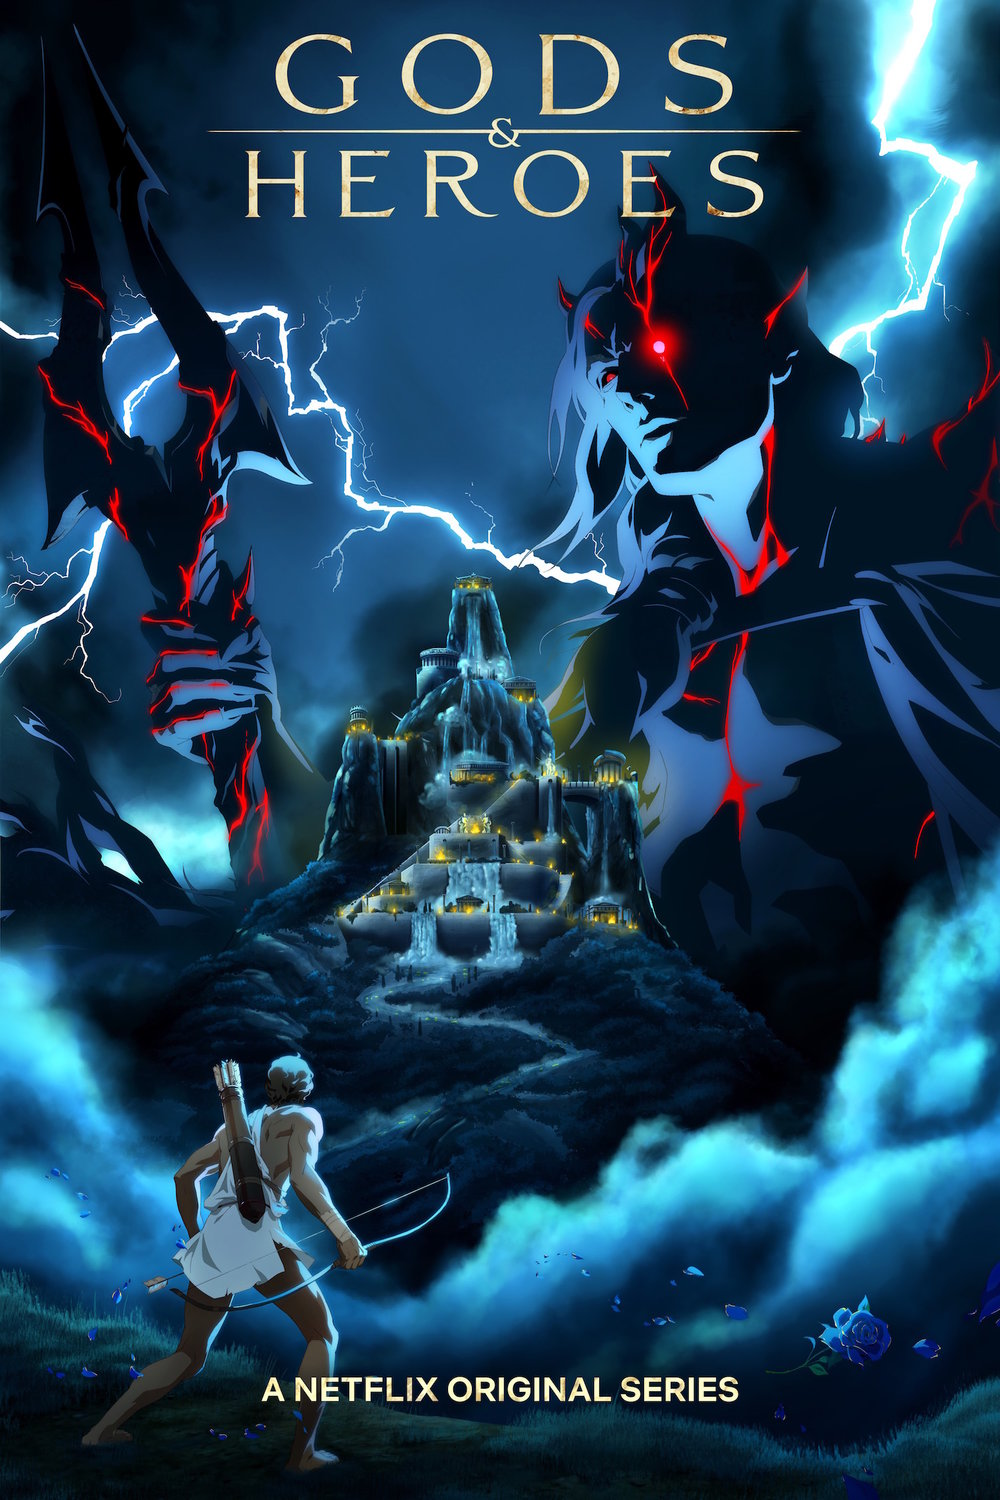 netflix-is-producing-a-greek-mythology-anime-series-called-gods-and-heroes-with-animation-studio-behind-castlevania